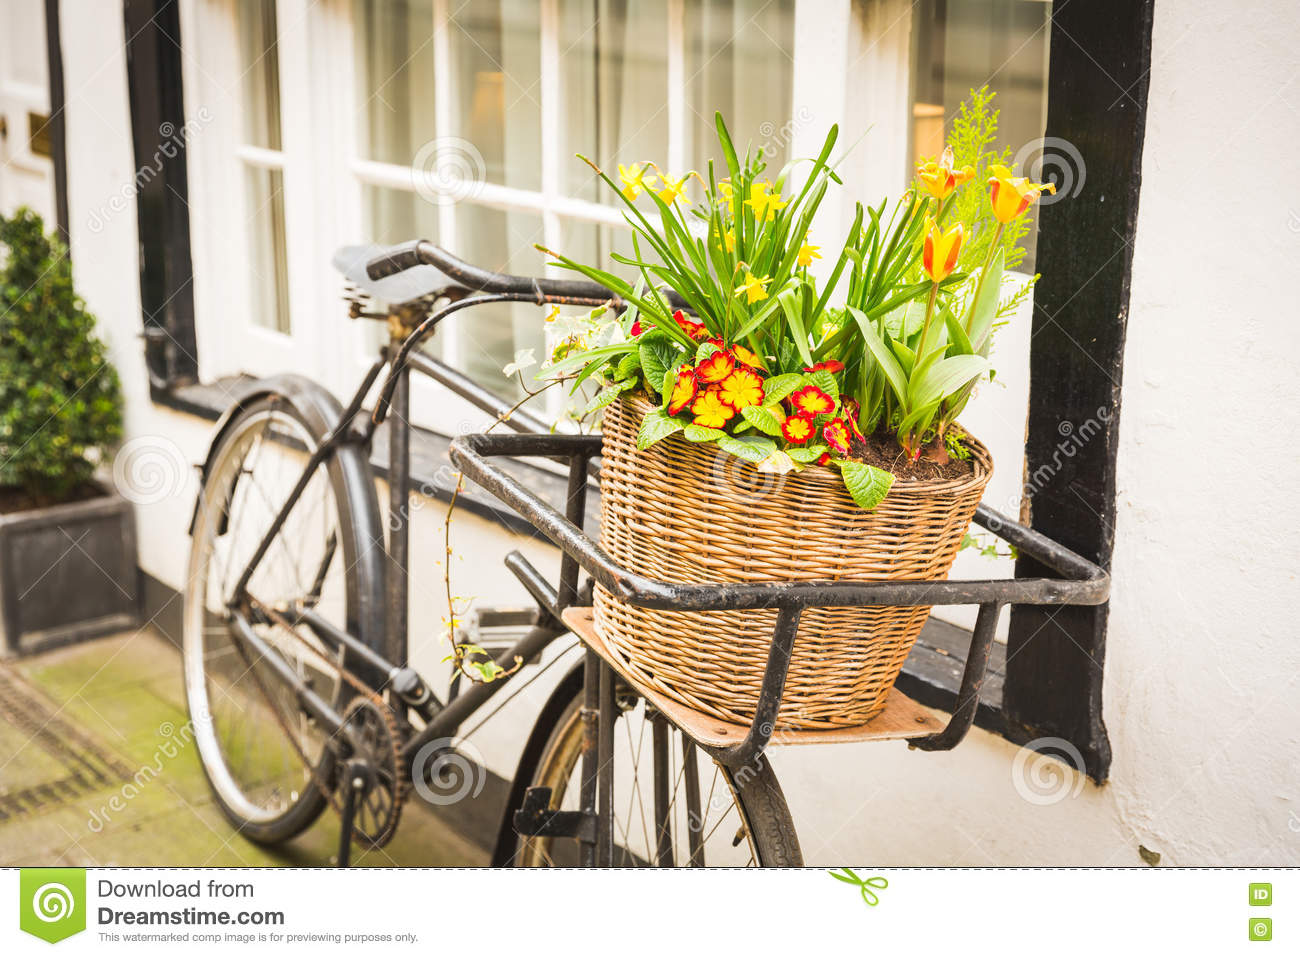 Flowers on an old bike basket next to a window